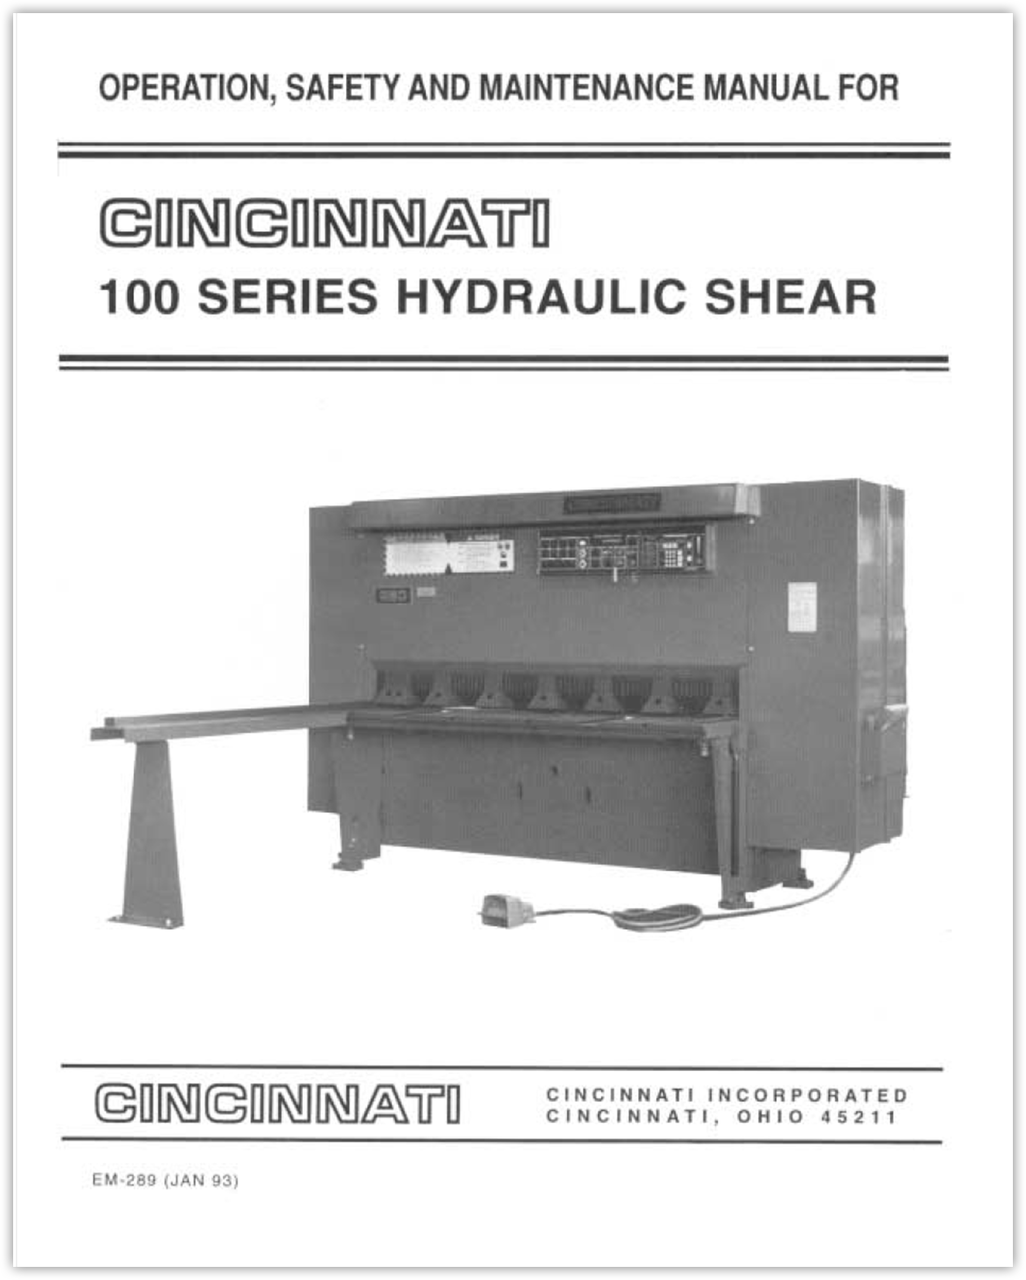 EM-289 (JAN 93) 100 Series Hydraulic Shear Operation, Safety and Maintenance